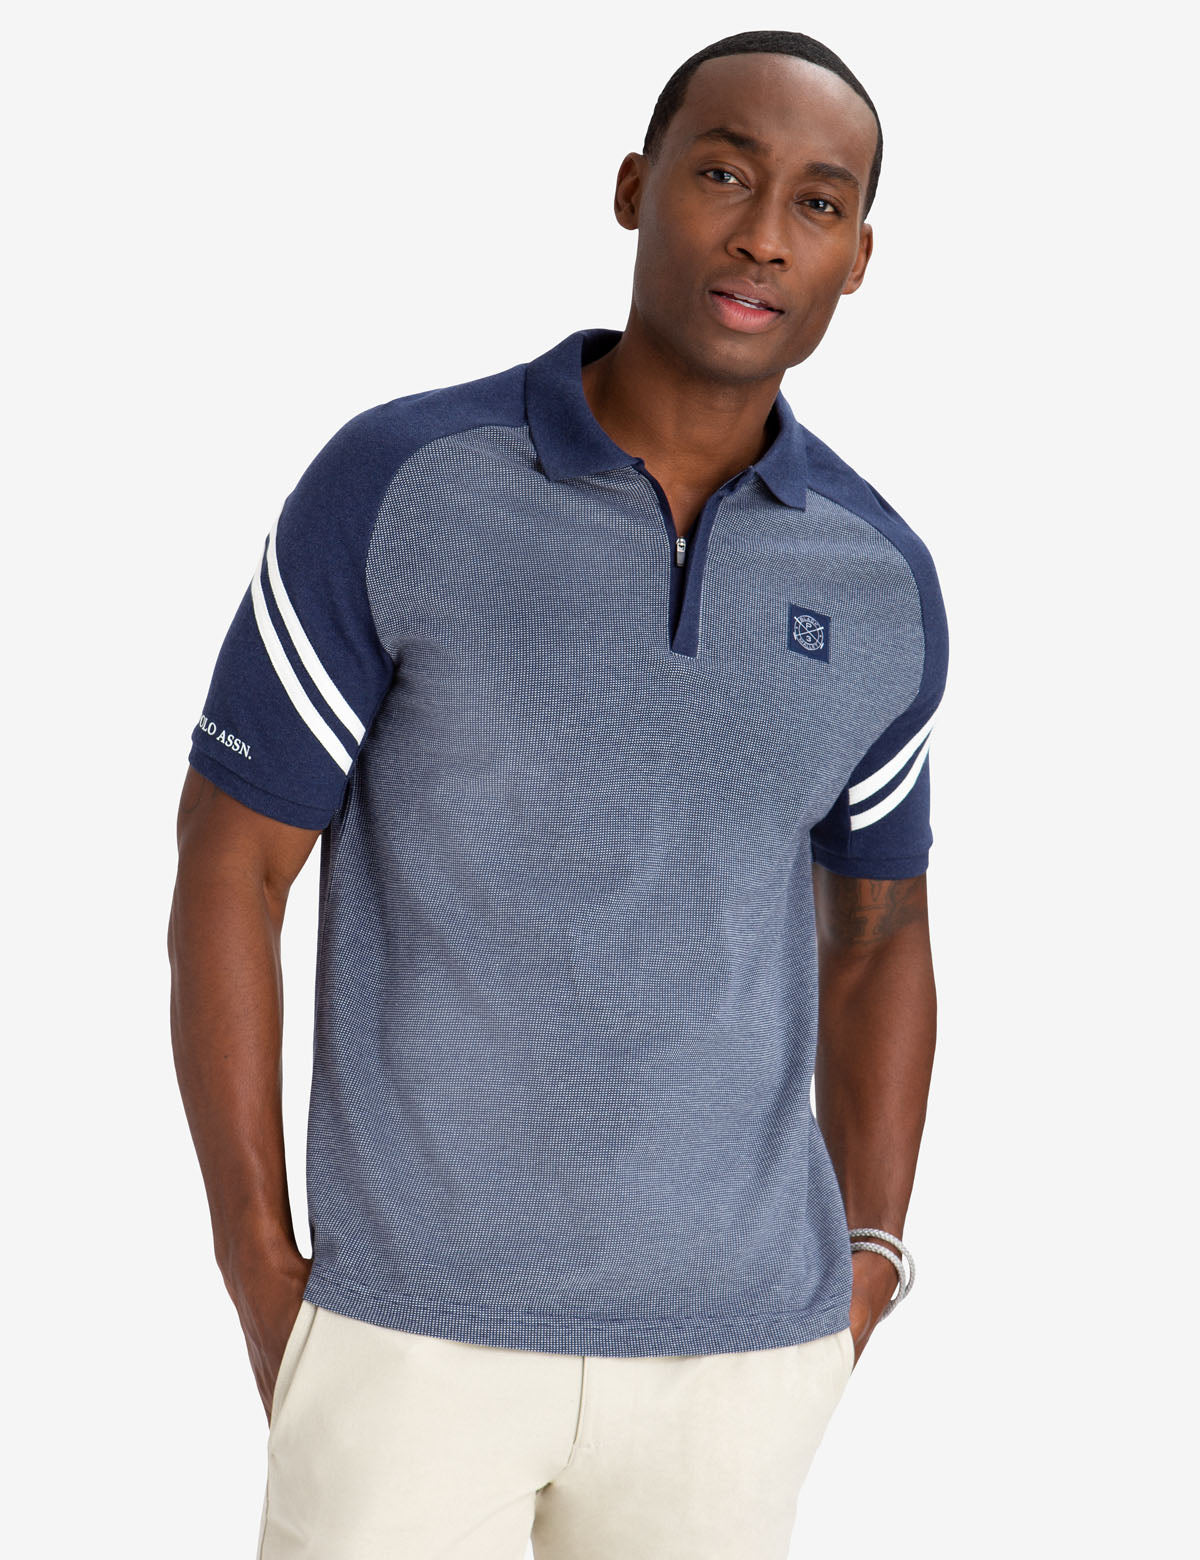 BLACK MALLET SLIM FIT JACQUARD ZIPPER POLO SHIRT - U.S. Polo Assn.